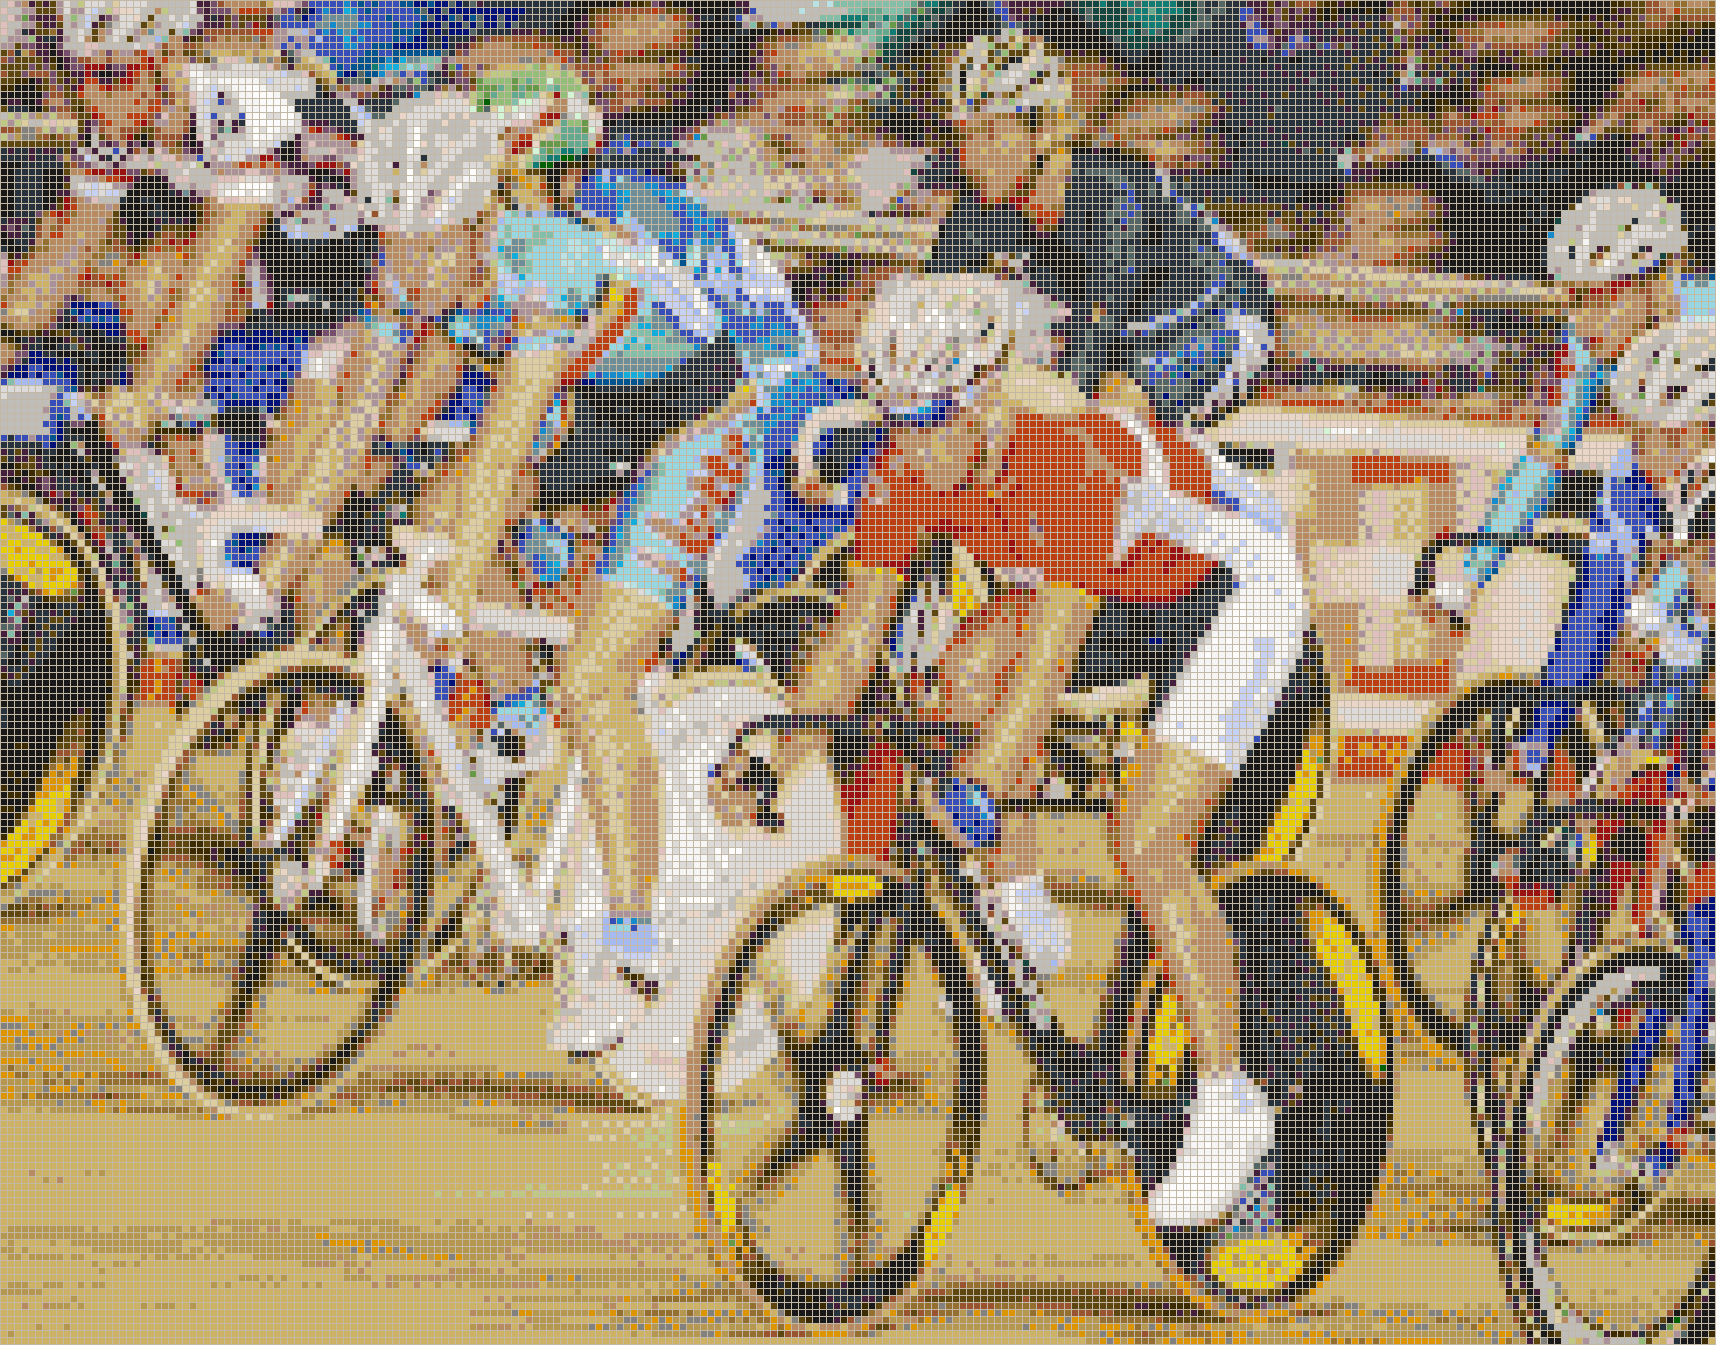 Women Cycling (Points Race) - Mosaic Tile Picture Art